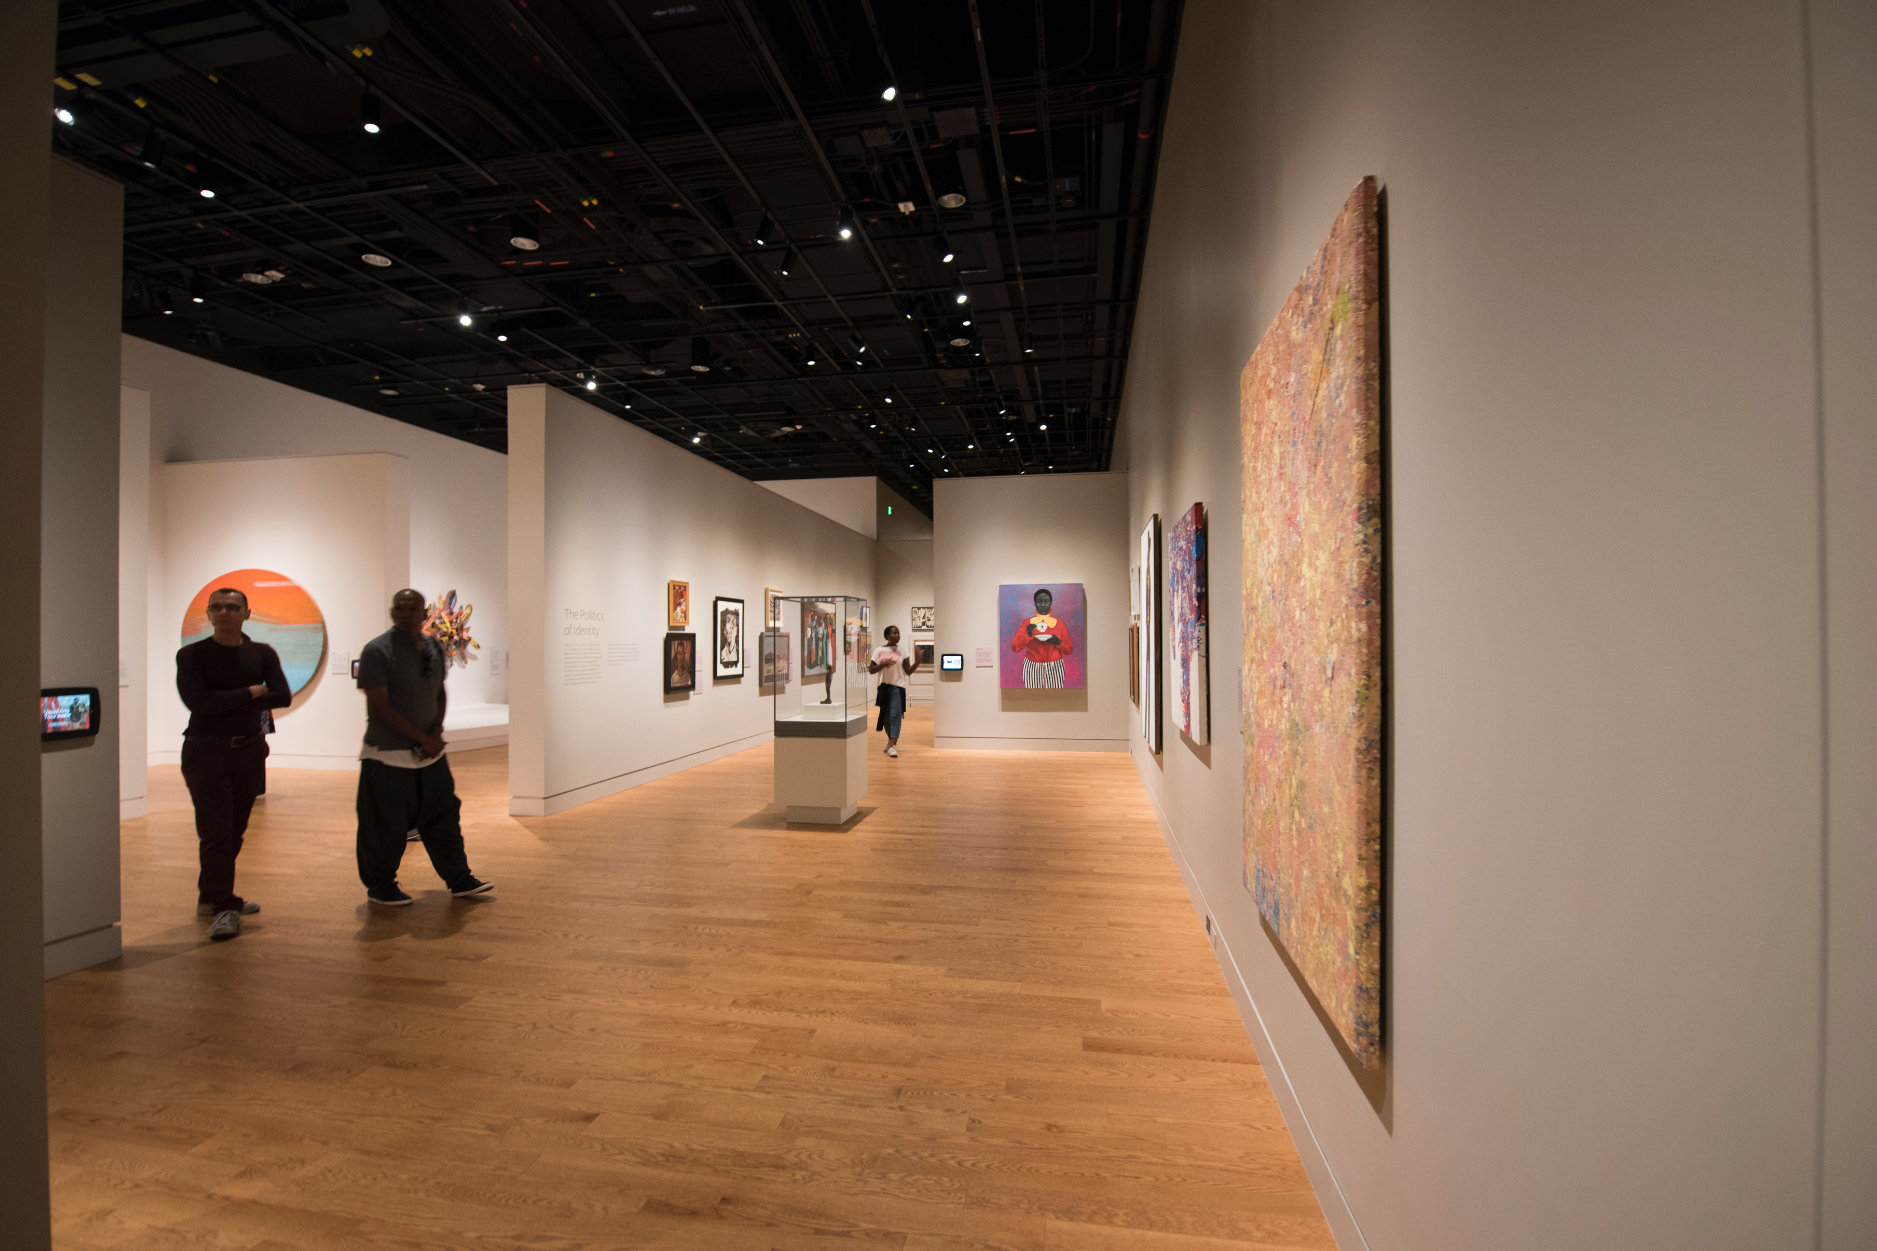 Galleries within the exhibition group artists by theme or approach, illustrating shared intellectual and aesthetic sensibilities. Photo credit: Luka Kito